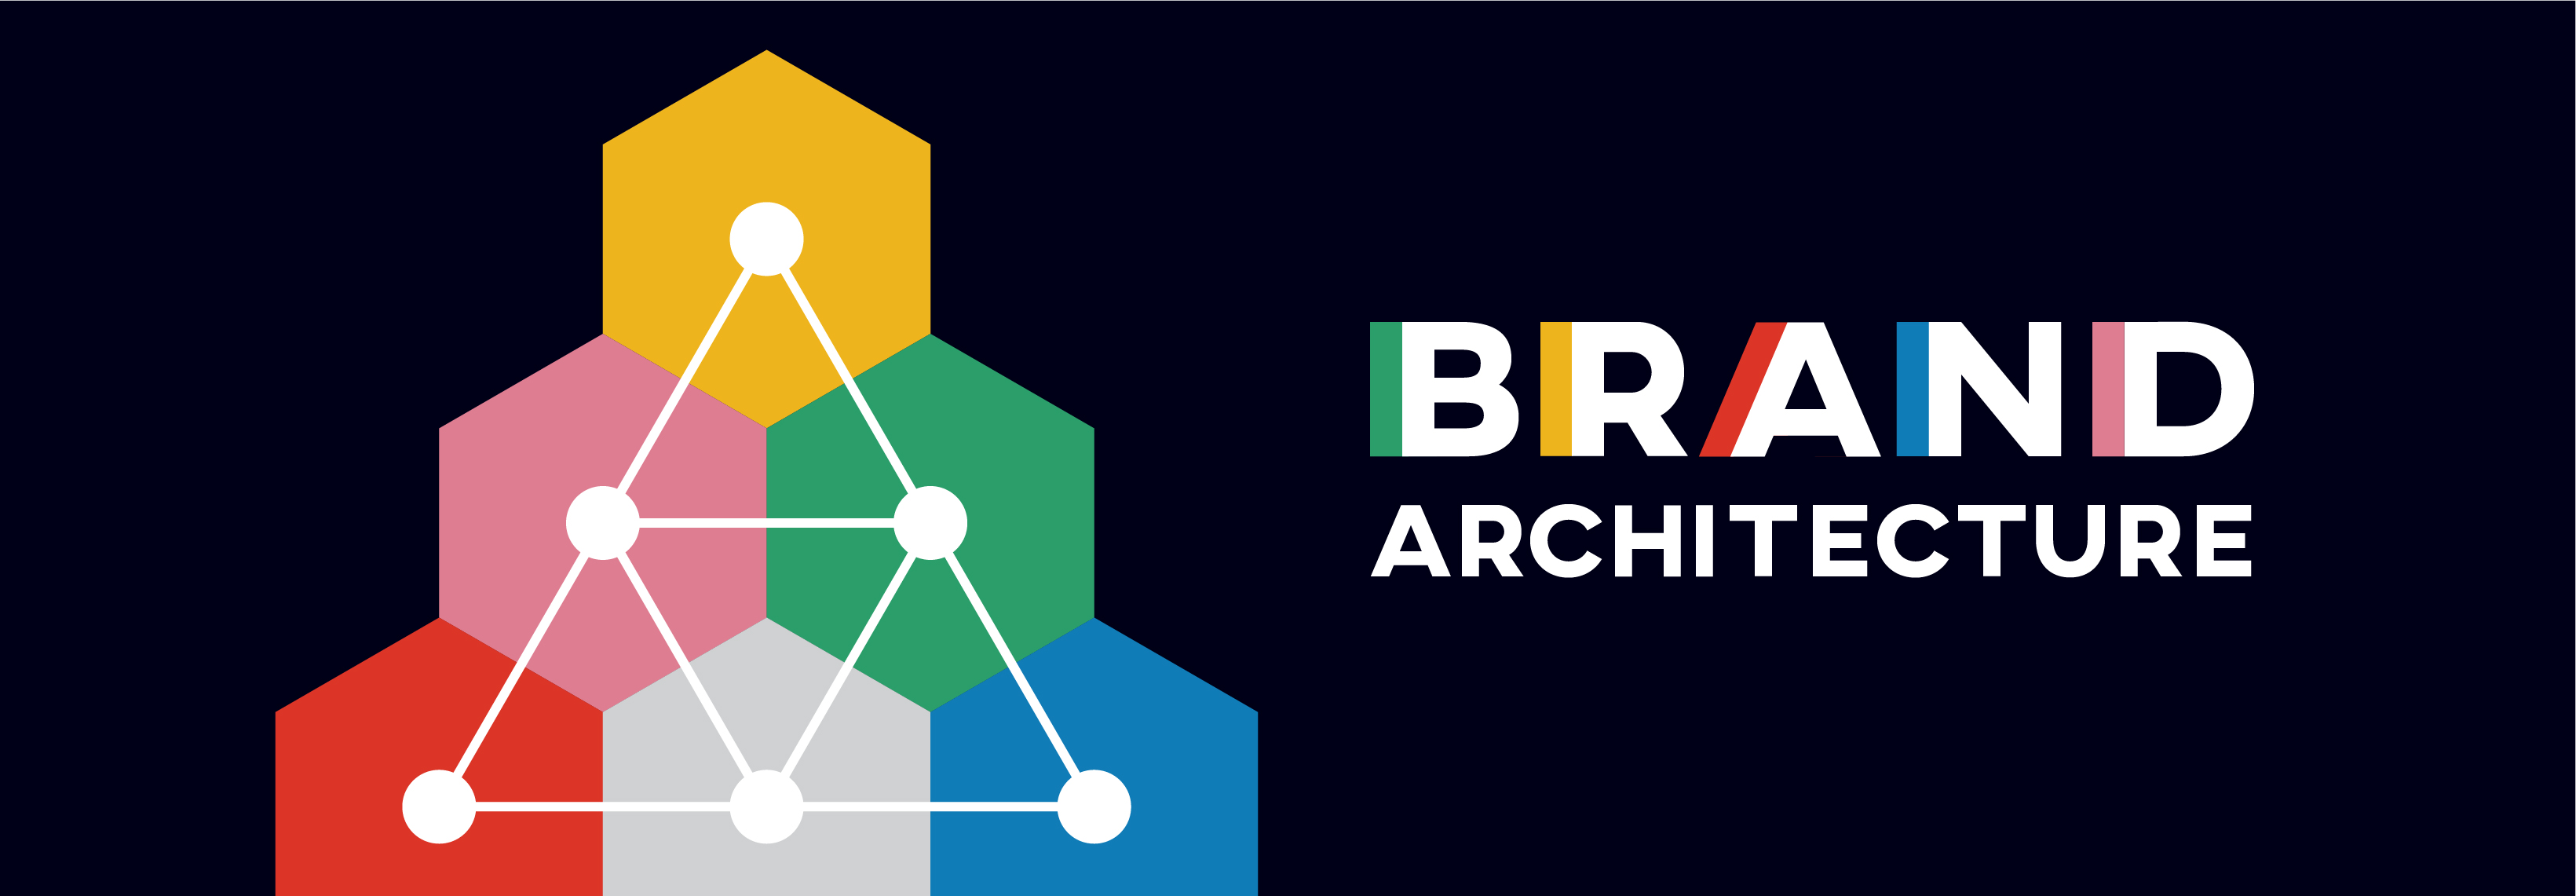 A guide to brand architecture